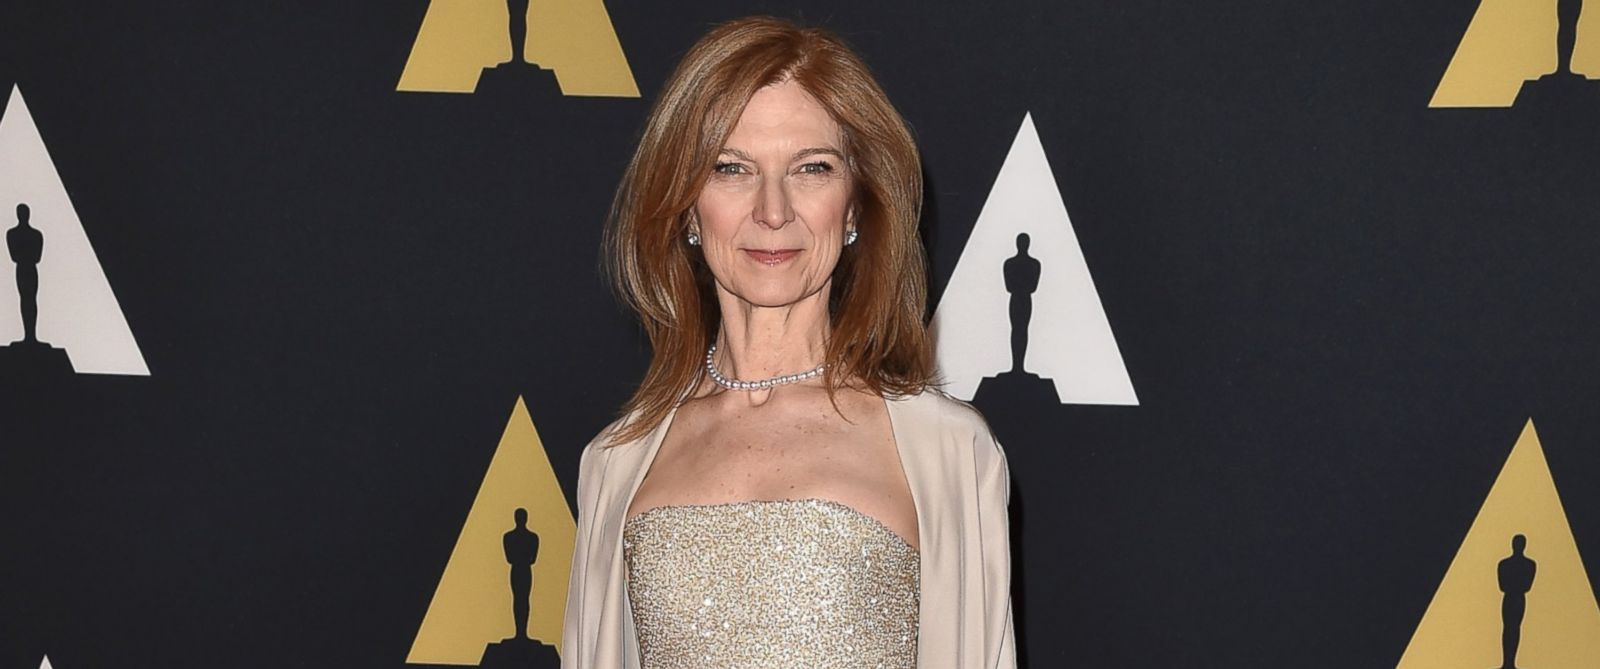 PHOTO: Academy of Motion Picture Arts and Sciences CEO Dawn Hudson attends the Academy of Motion Picture Arts and Sciences 7th annual Governors Awards, Nov. 14, 2015 in Hollywood, Calif.